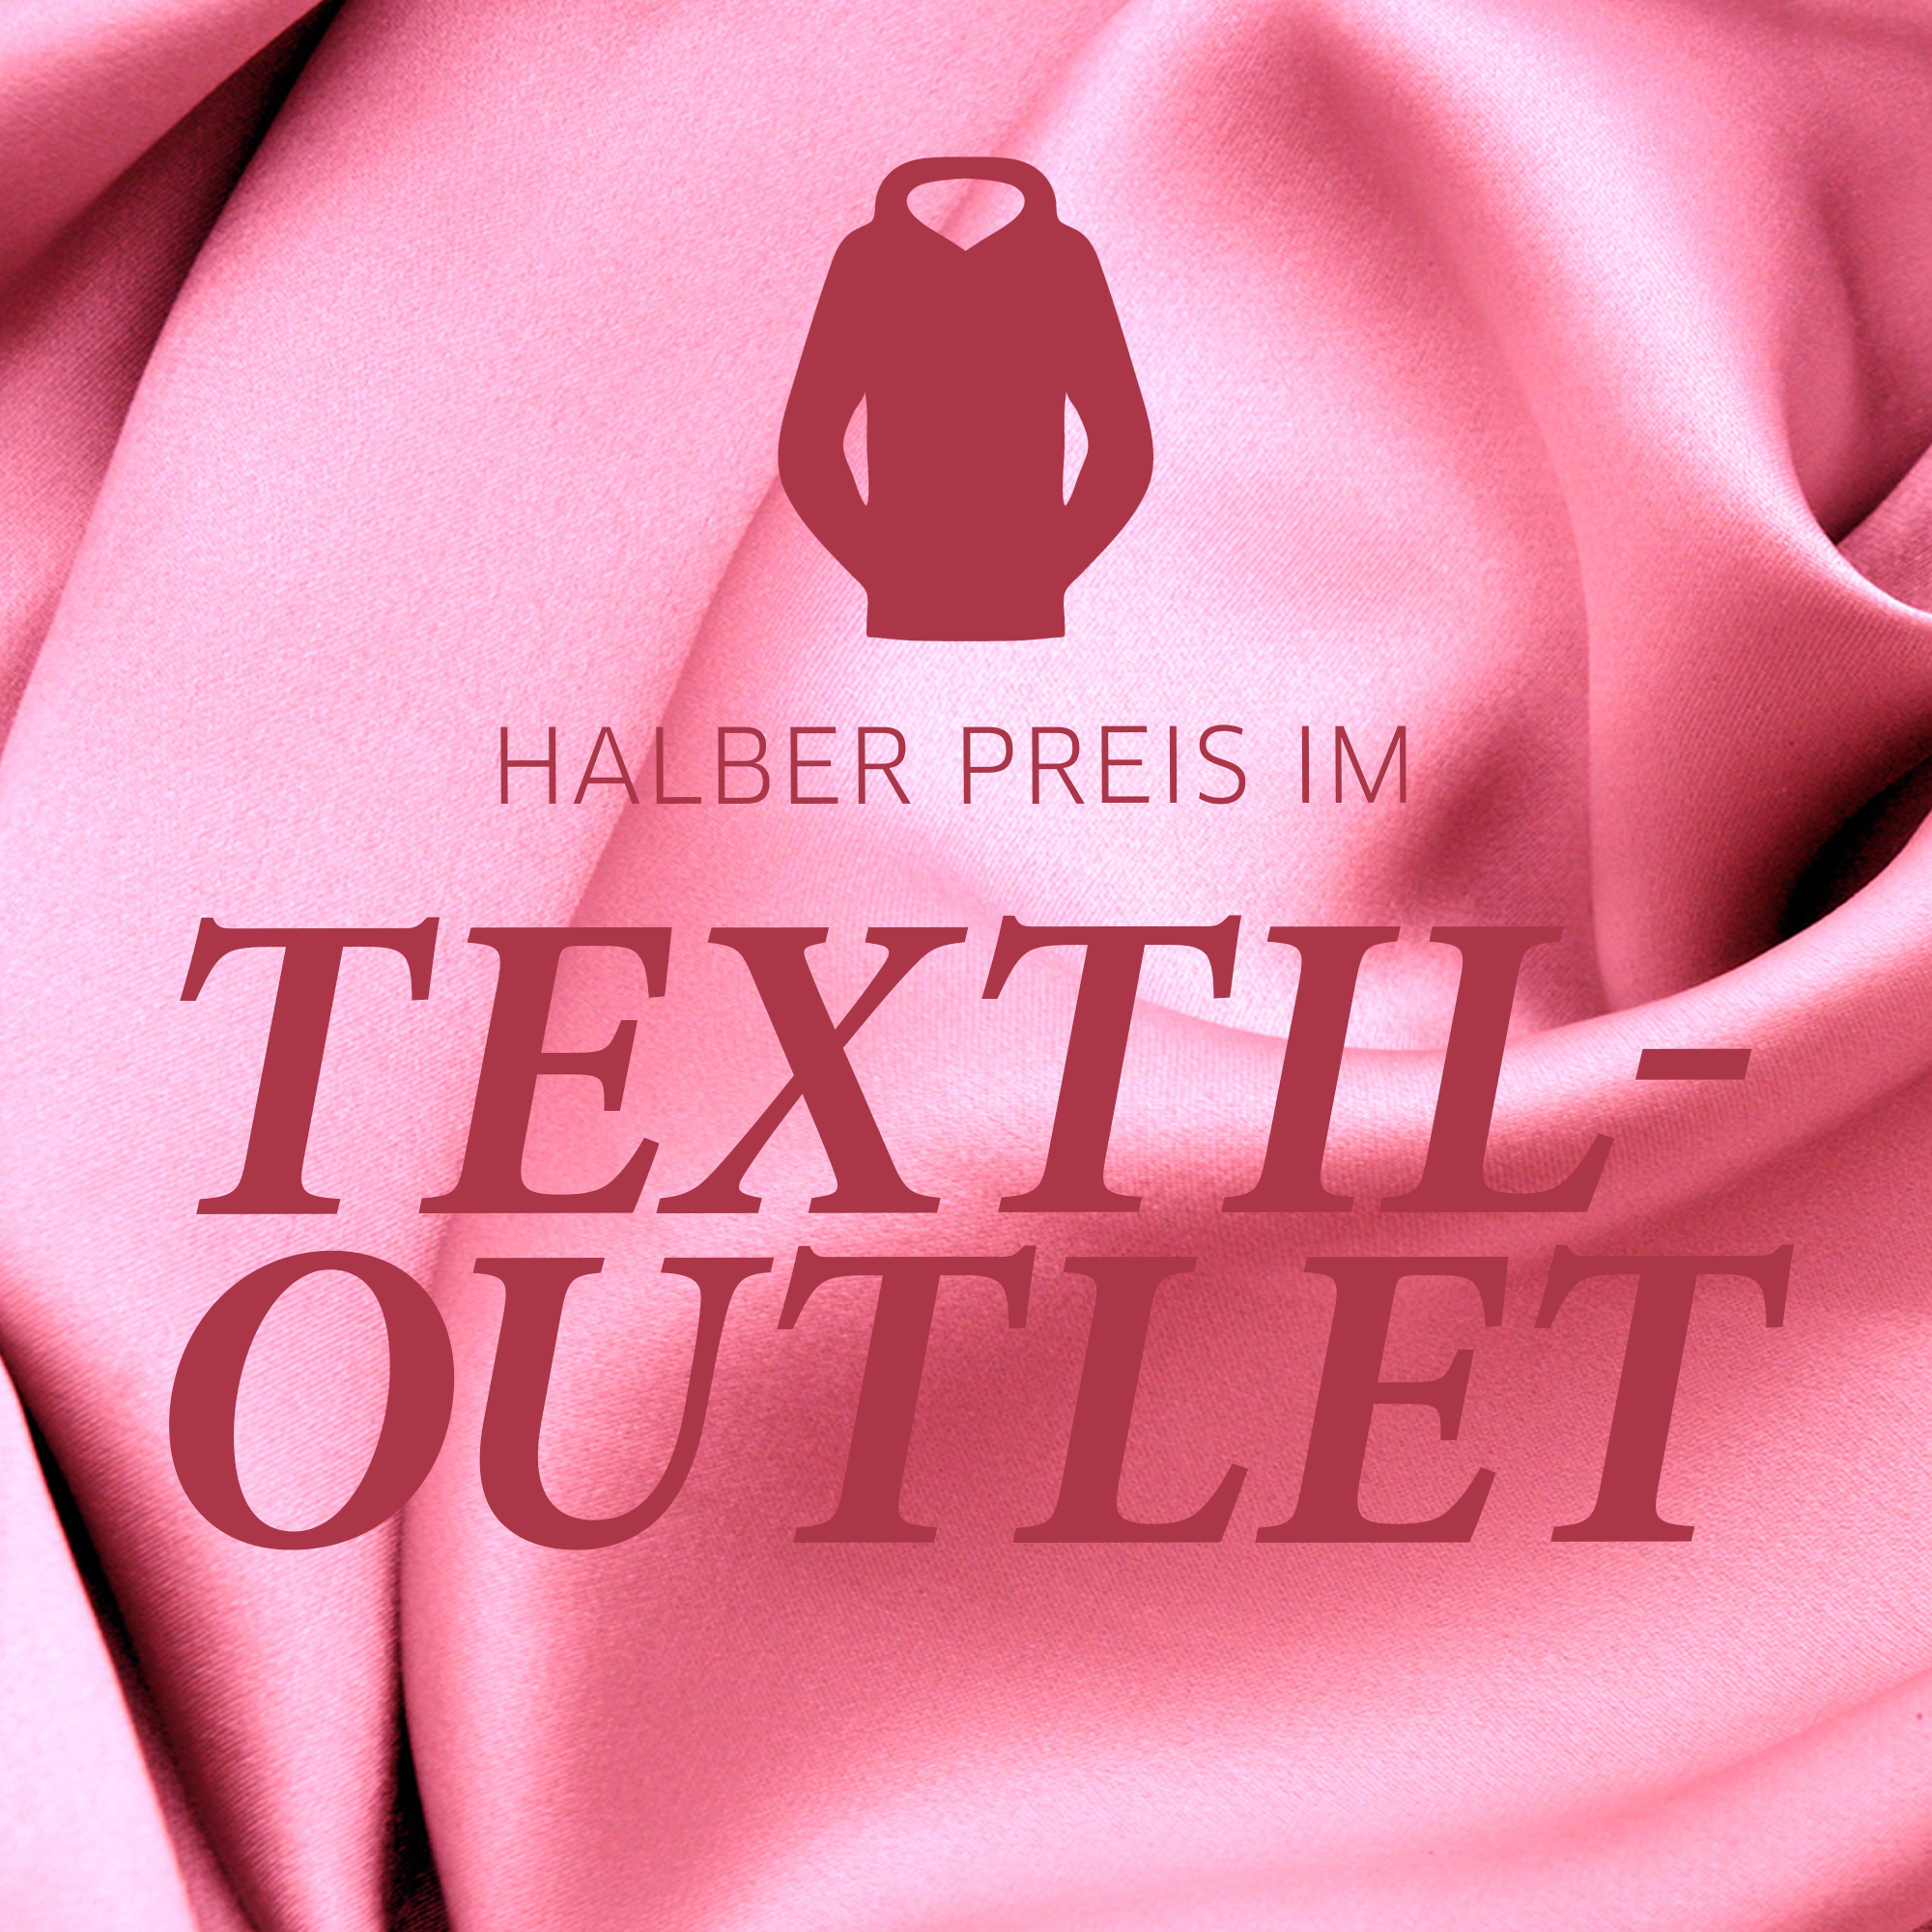 Textil OUTLET.jpg